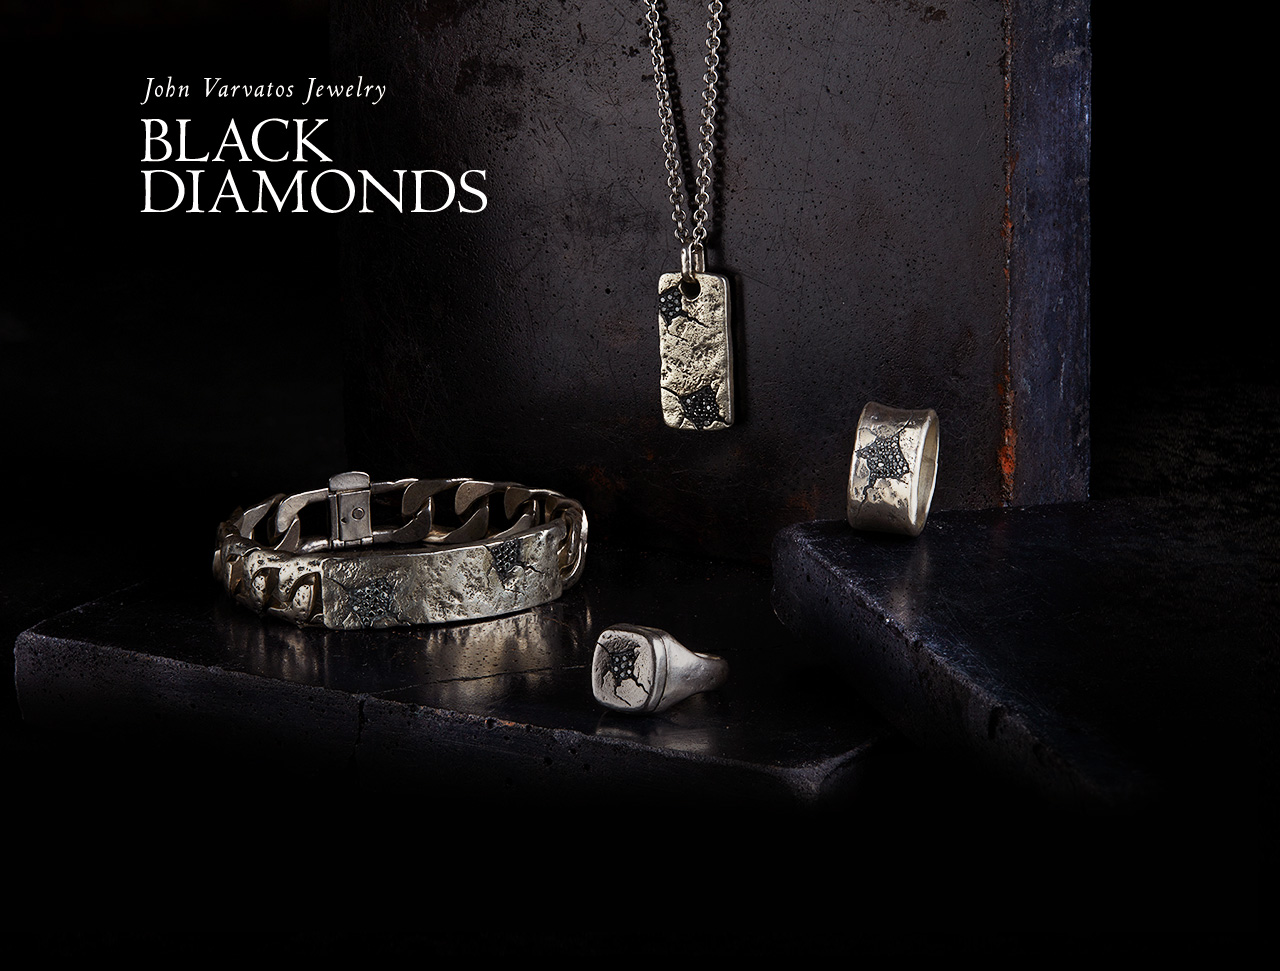 John Varvatos Jewelry - Black Diamonds